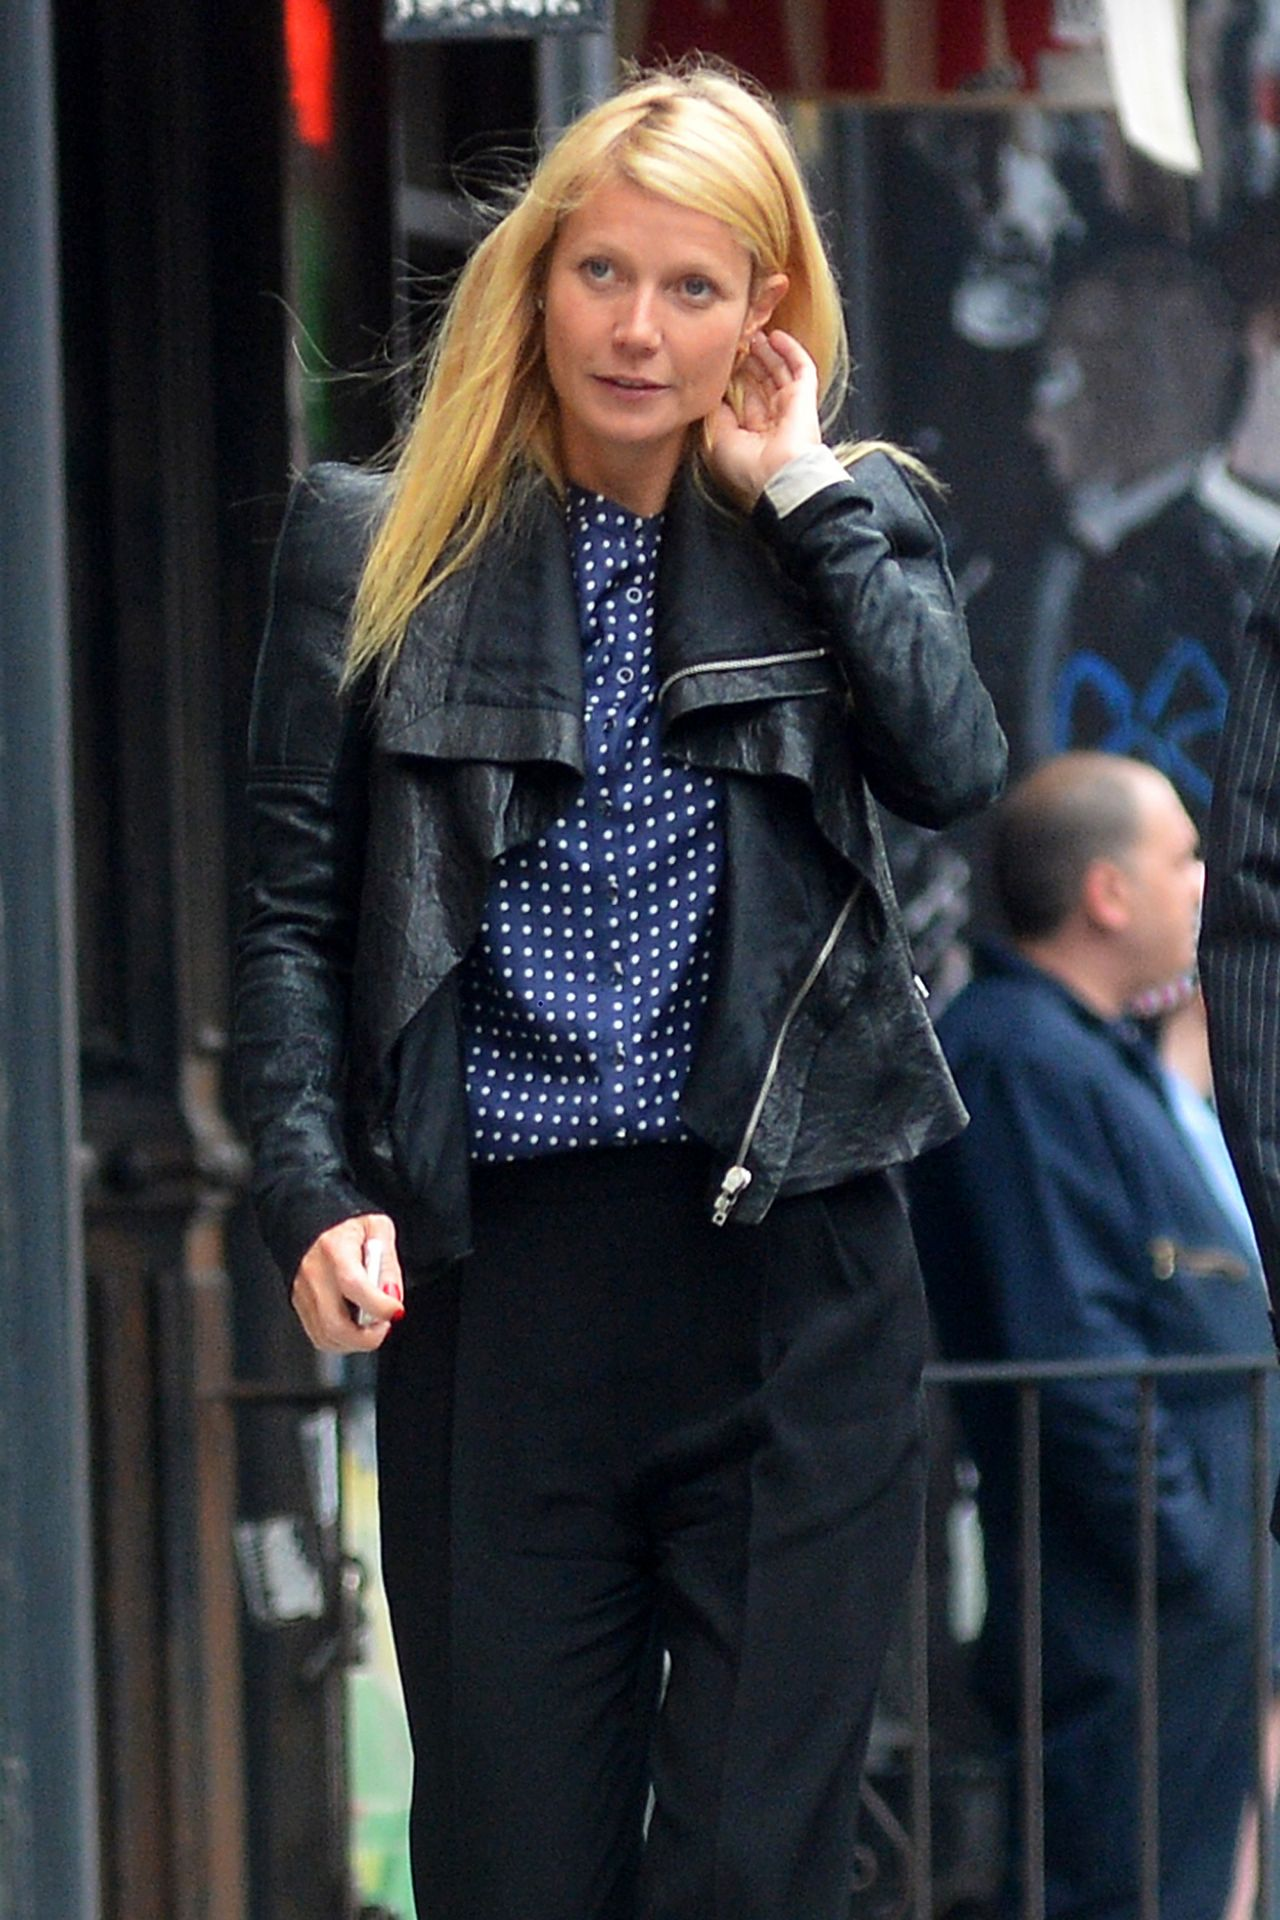 Gwyneth Paltrow in New York City - Leaving Emilio Ballato Rrestaurant in SOHO